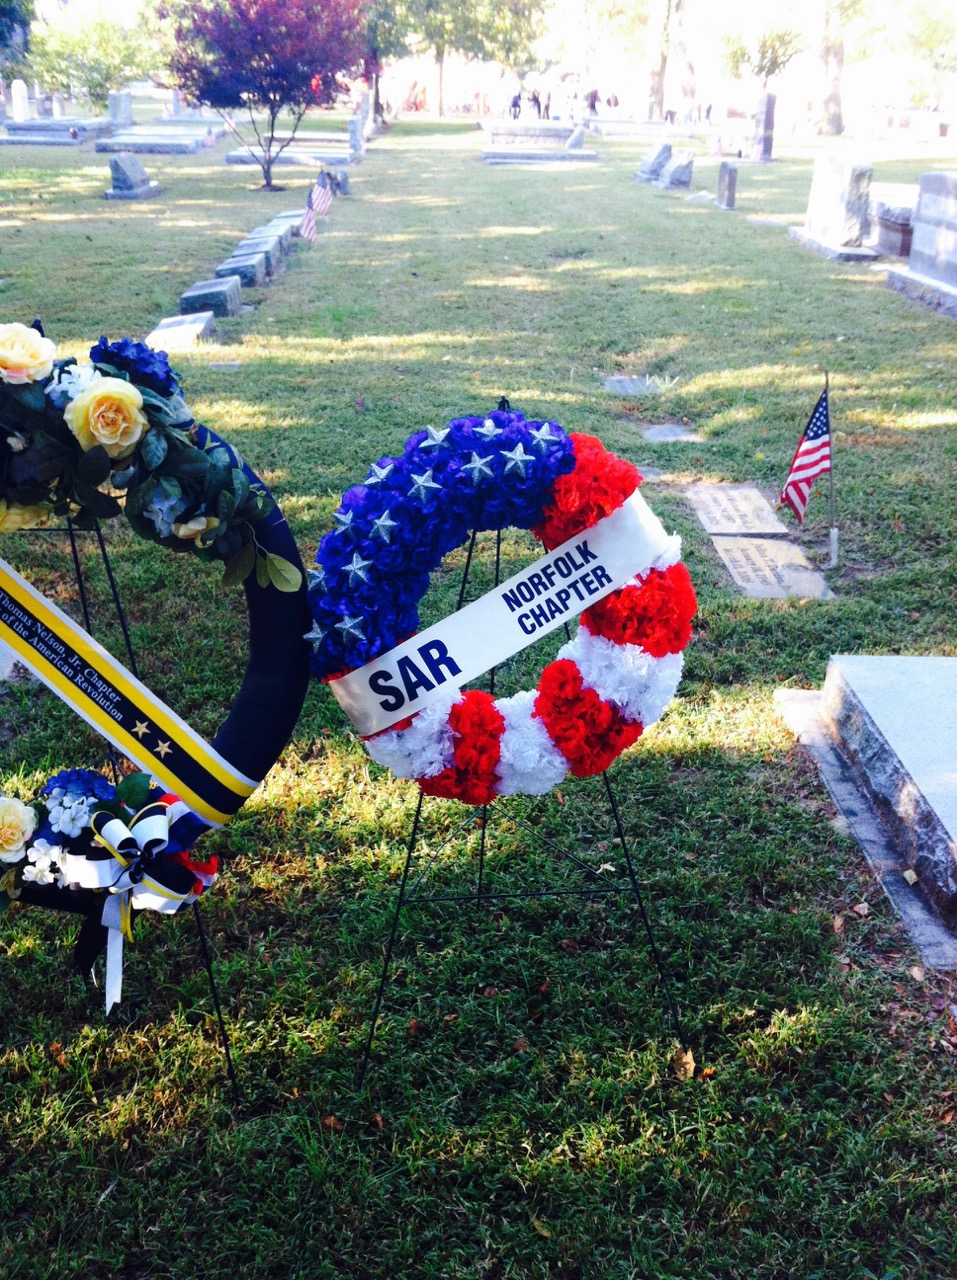 The Norfolk Chapter SAR wreath awaits presentation at the grave of General Thomas Nelson, Jr